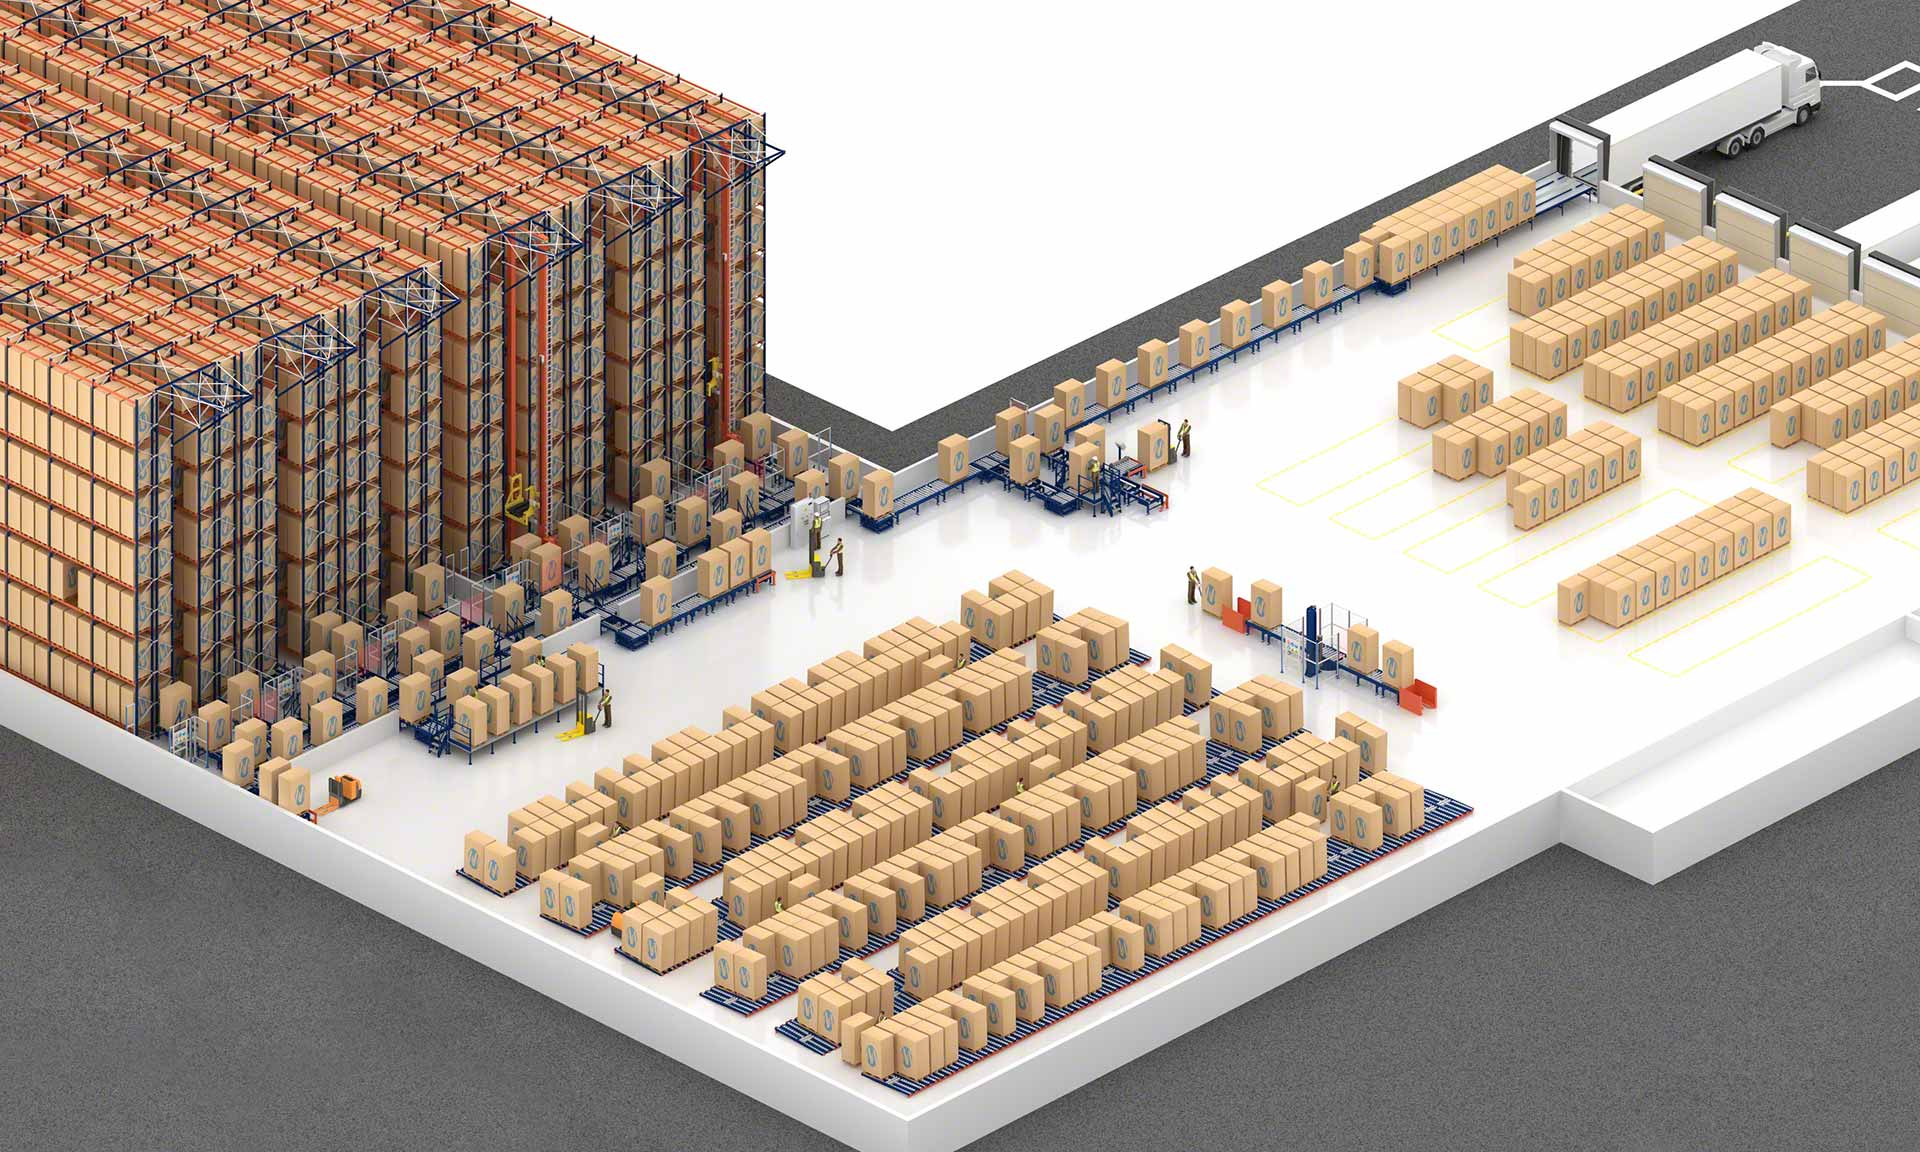 Postres Reina: automation sweetens the supply chain